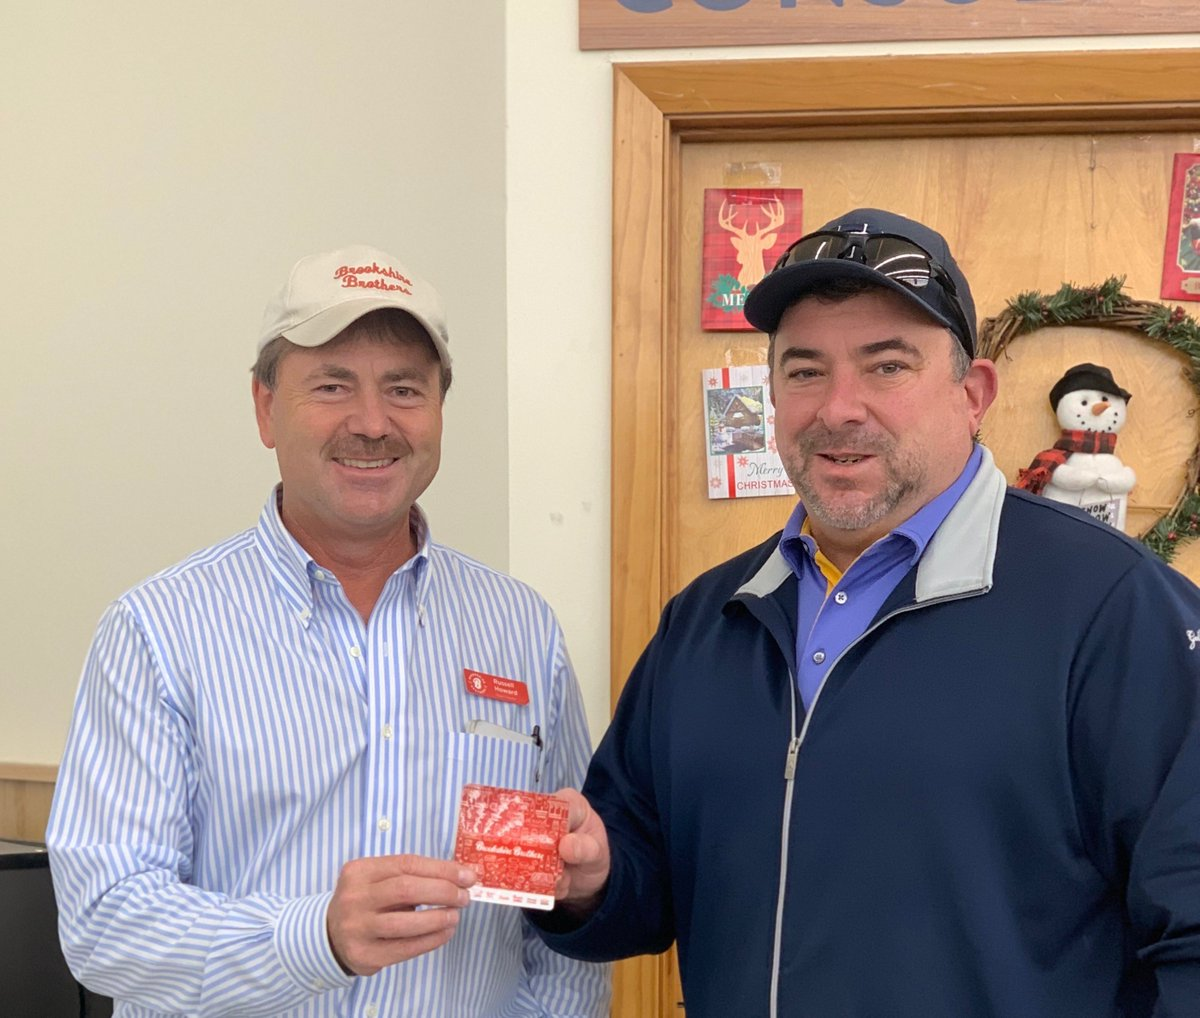 Hes Celebrating with FREE groceries❗ Congratulations to Ben C., this weeks Fall into Free Groceries gift card winner from Bellville, TX! 🎉 🎊 For contest details and how to become a Celebrate Rewards Member visit ➡ bit.ly/36XvCAp #BrookshireBrothers